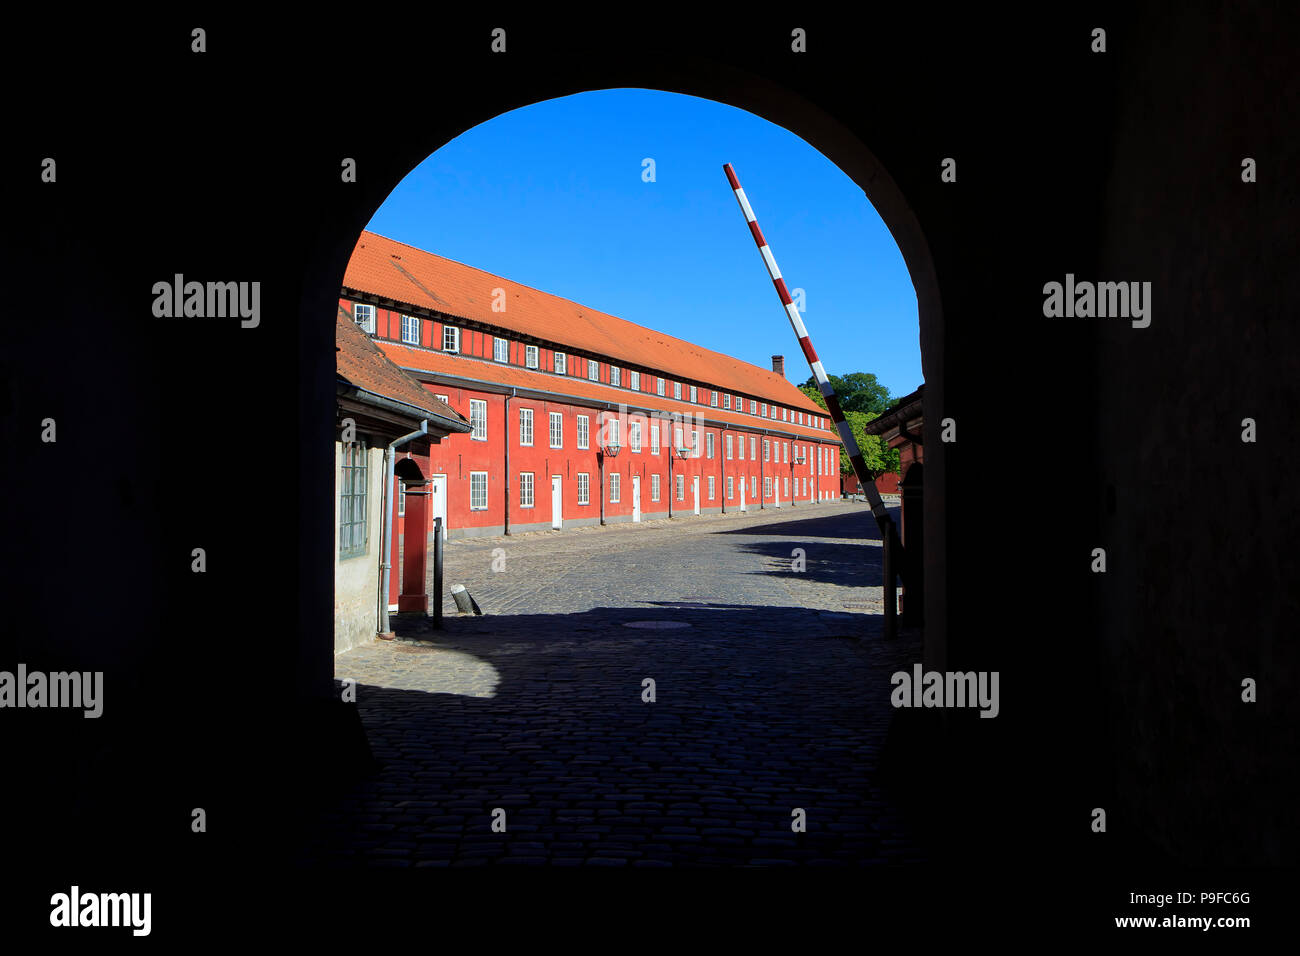 A view at the Rows through the 17th-century King's Gate (1663) of the Citadel (Kastellet) in Copenhagen, Denmark - Stock Image